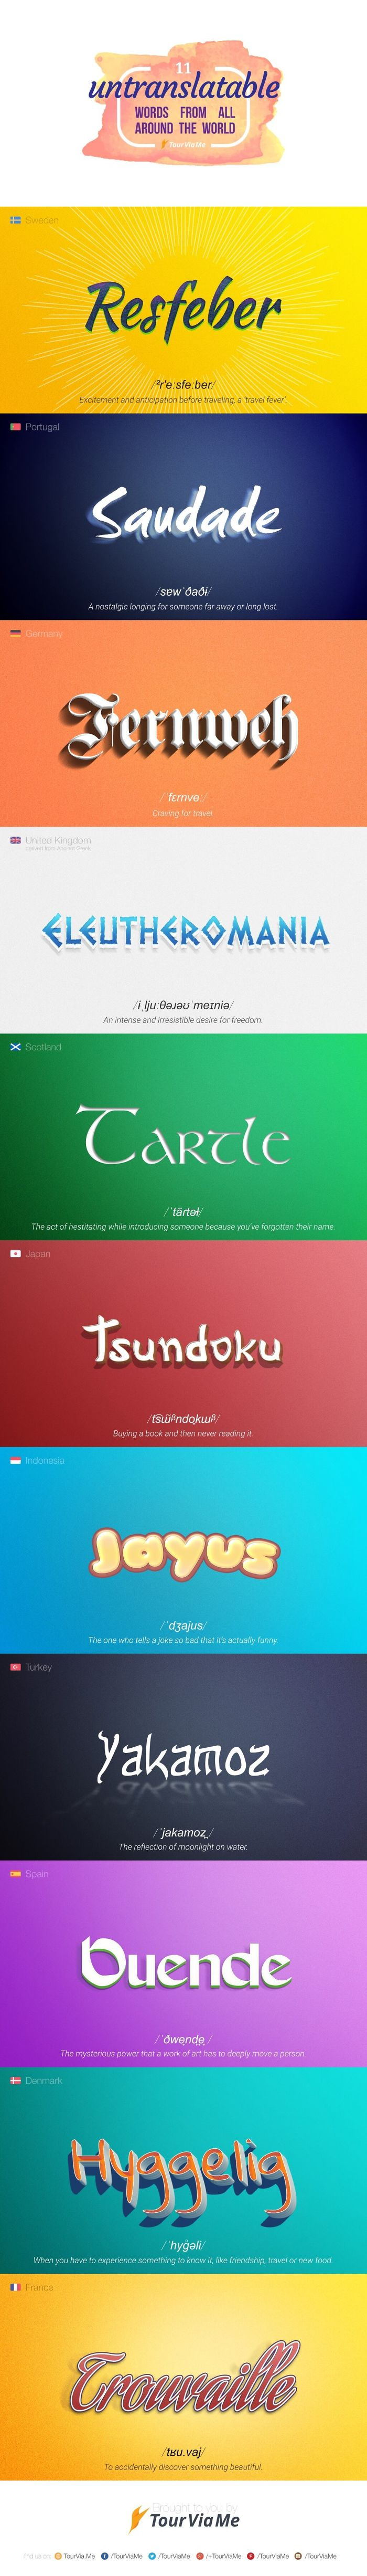 11 Untranslatable Words From All Around The World [infographic]